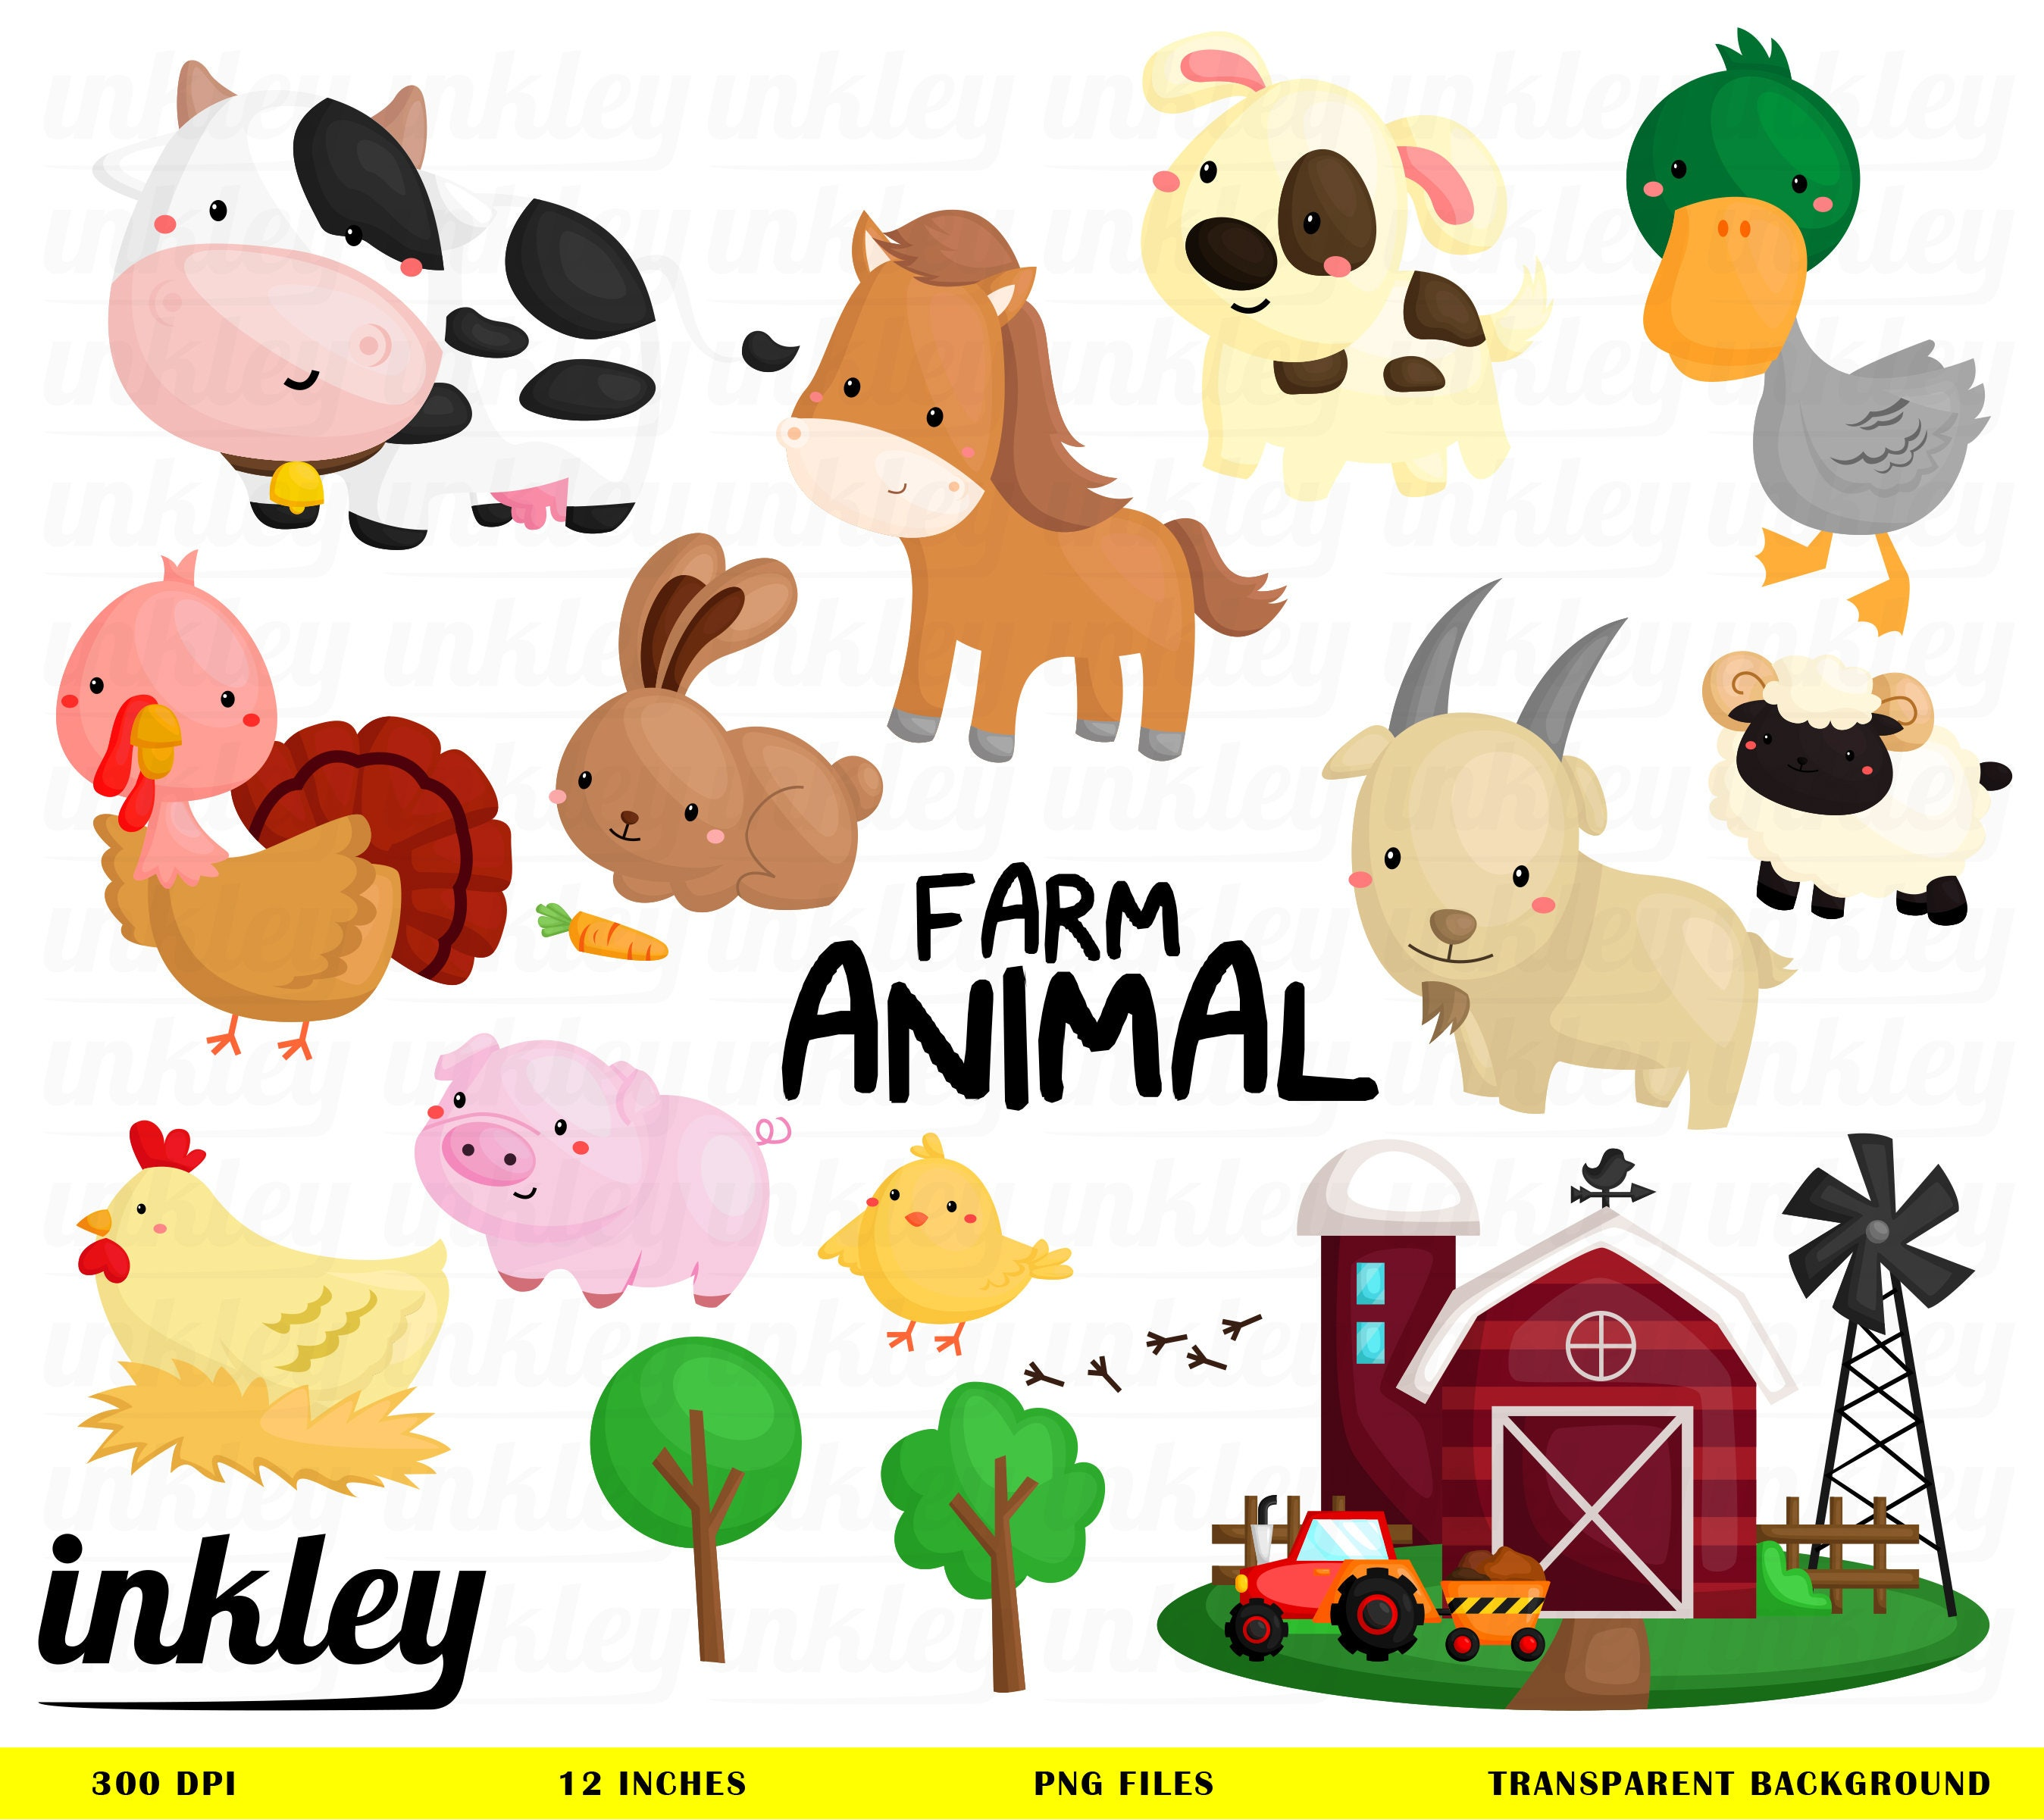 farm animal clipart farm animal clip art farm animal png rh etsy com farm animals clipart ducks farm animals clip art black and white